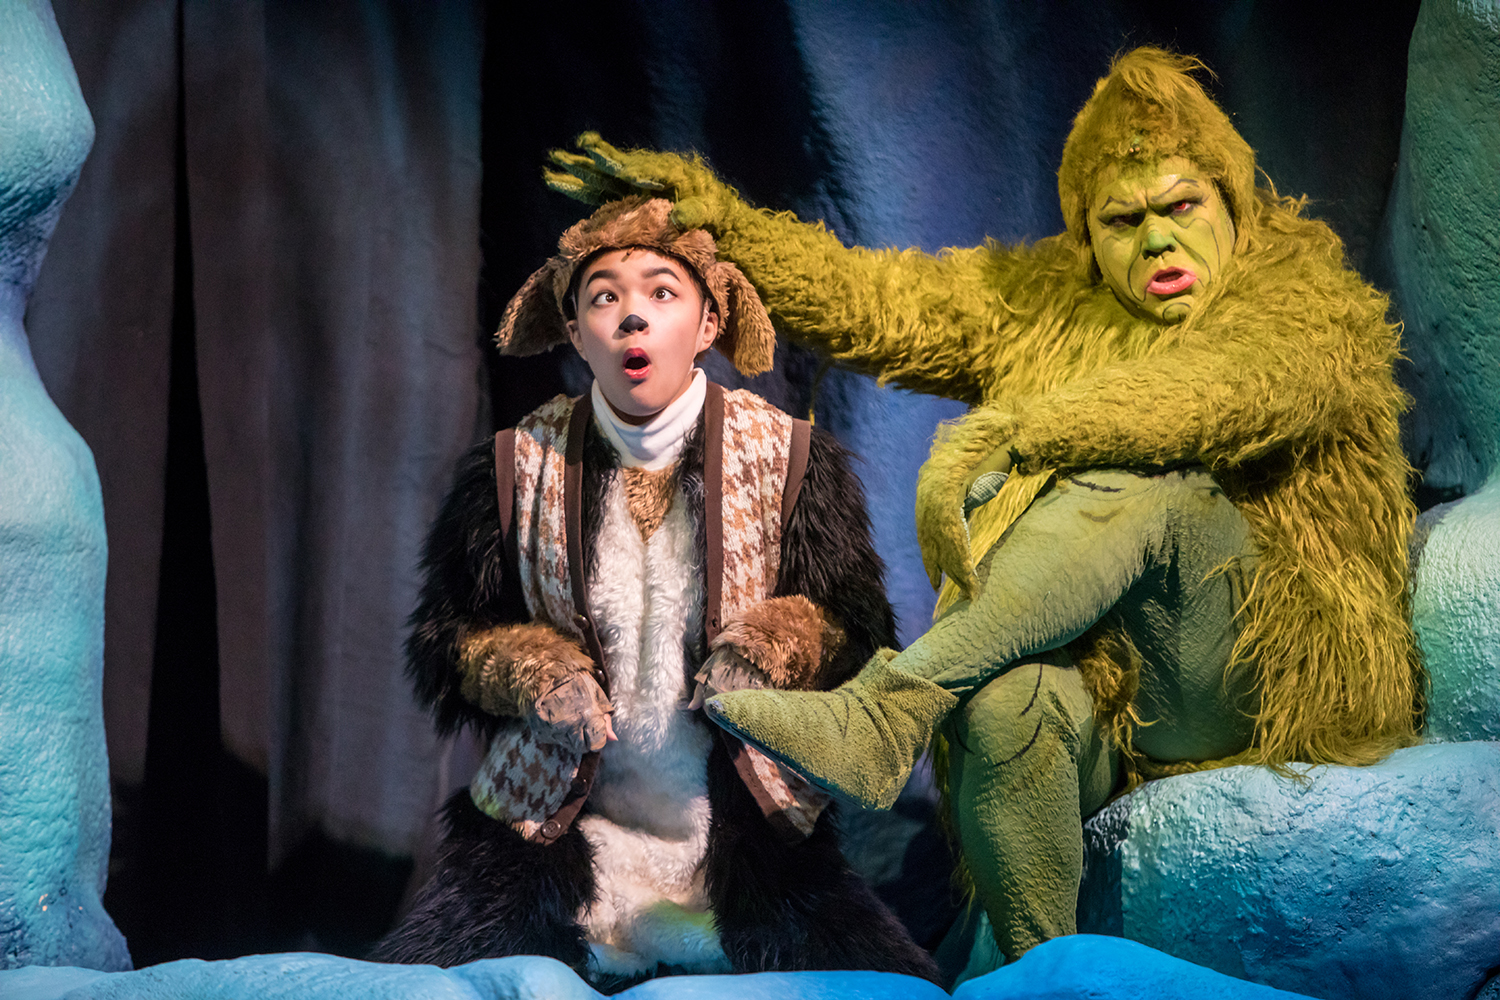 Natalie  Tran  (Young  Max)  and  Reed  Sigmund  (The  Grinch)  in  Dr.  Seuss's  How  The  Grinch  Stole  Christmas  |  Photo  by  Dan  Norman